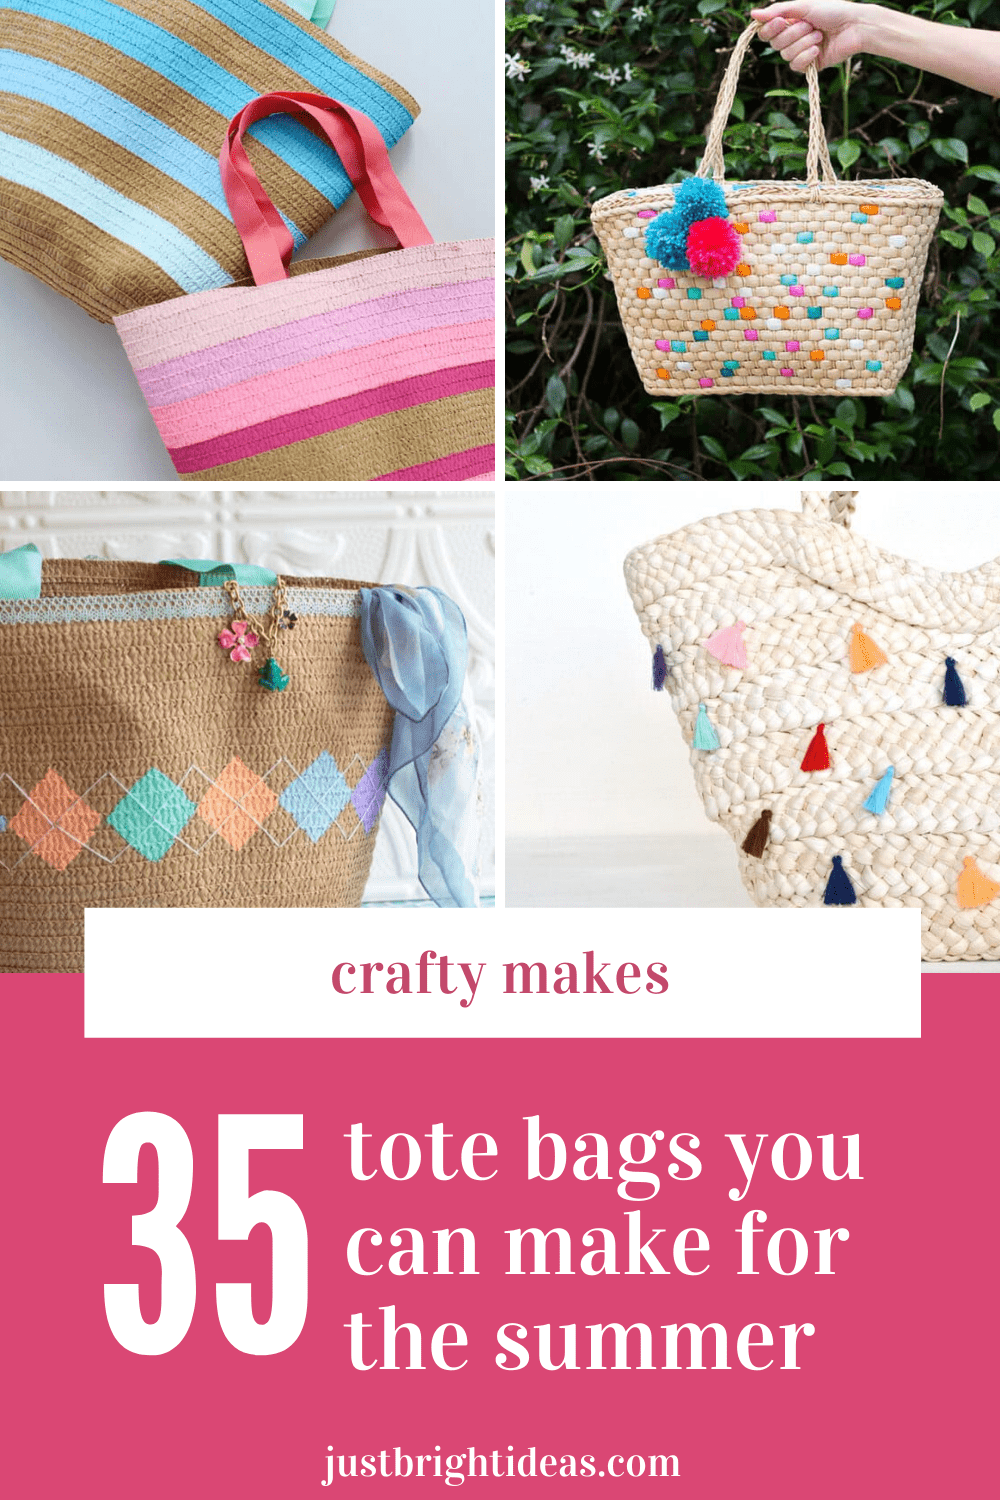 Check out these crafty makes - so many summery tote bags you can DIY at home